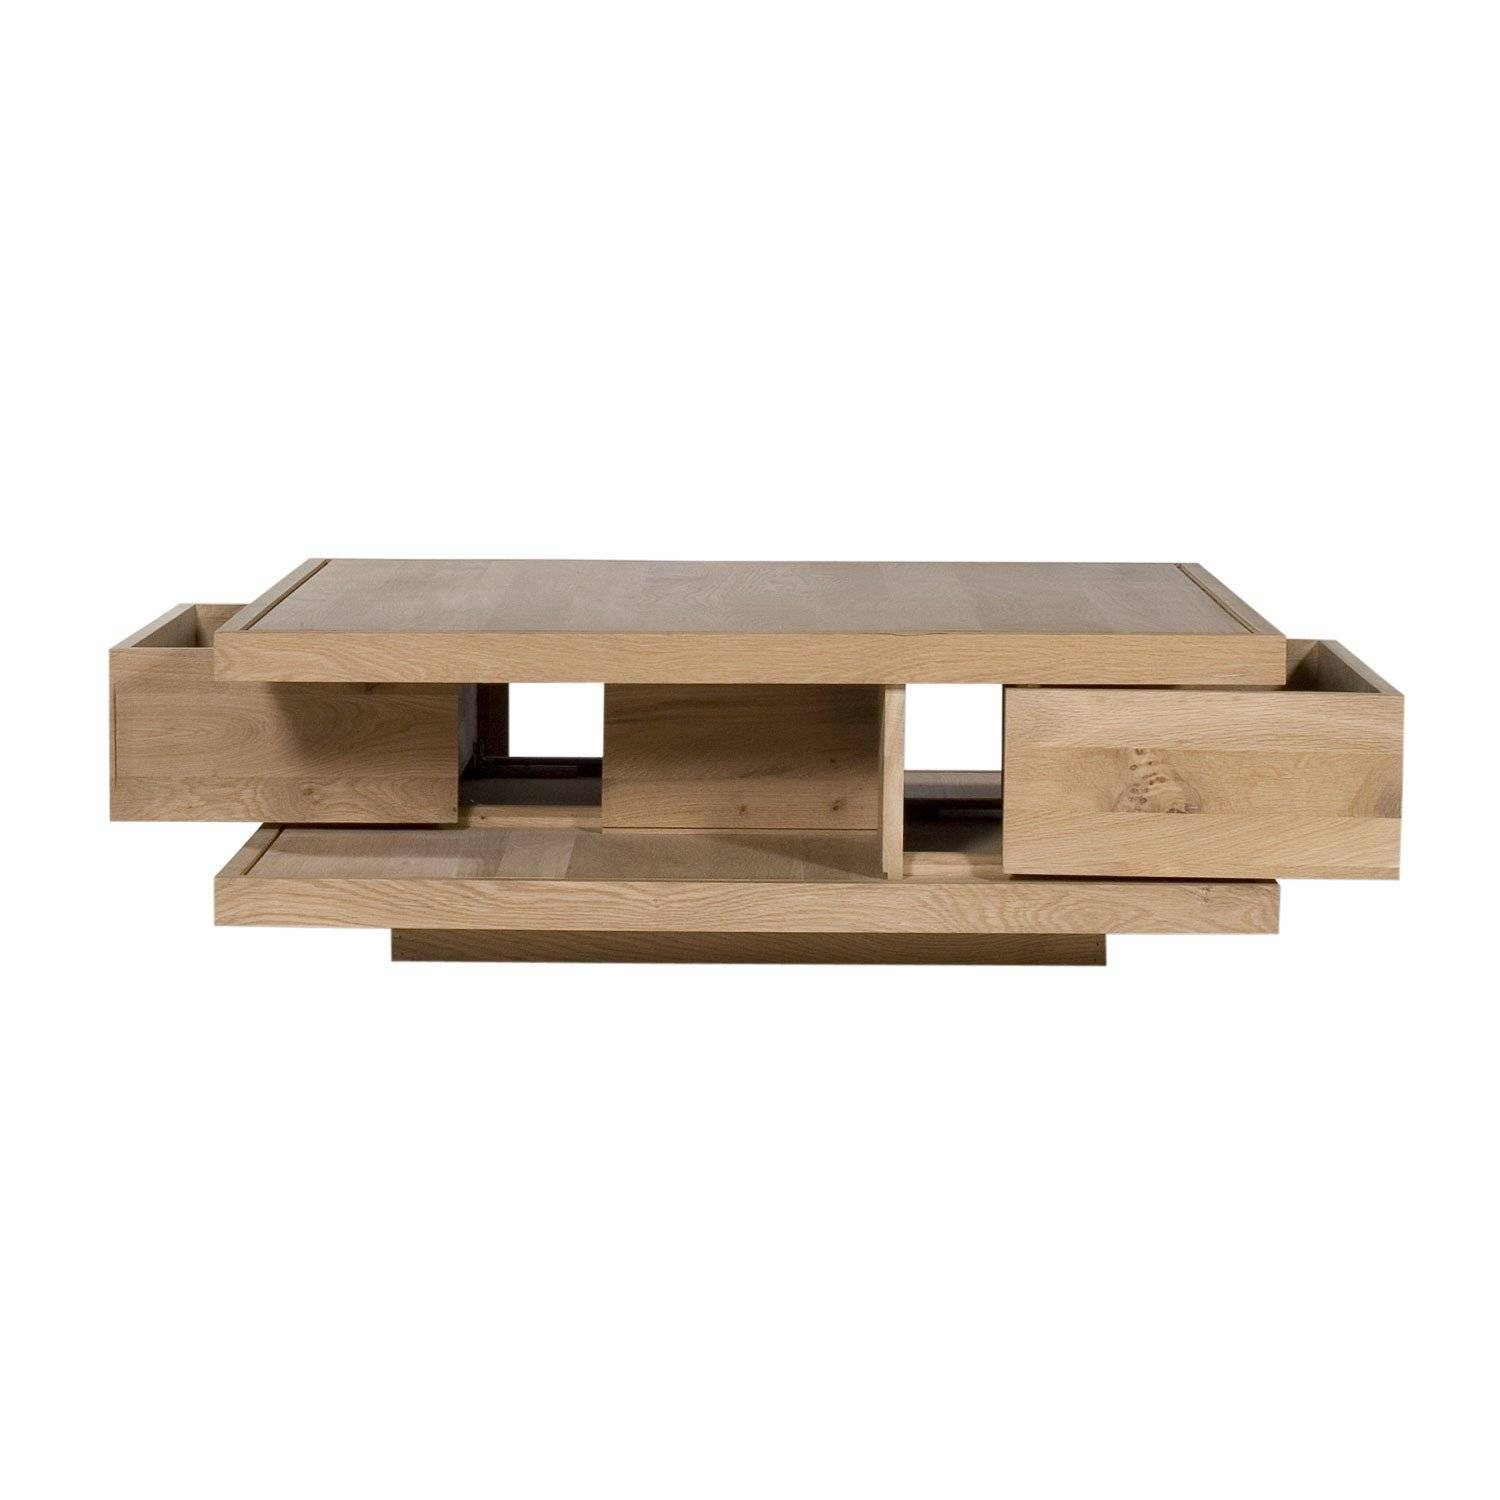 Ethnicraft Flat Oak Coffee Tables | Solid Wood Furniture pertaining to Low Oak Coffee Tables (Image 8 of 15)